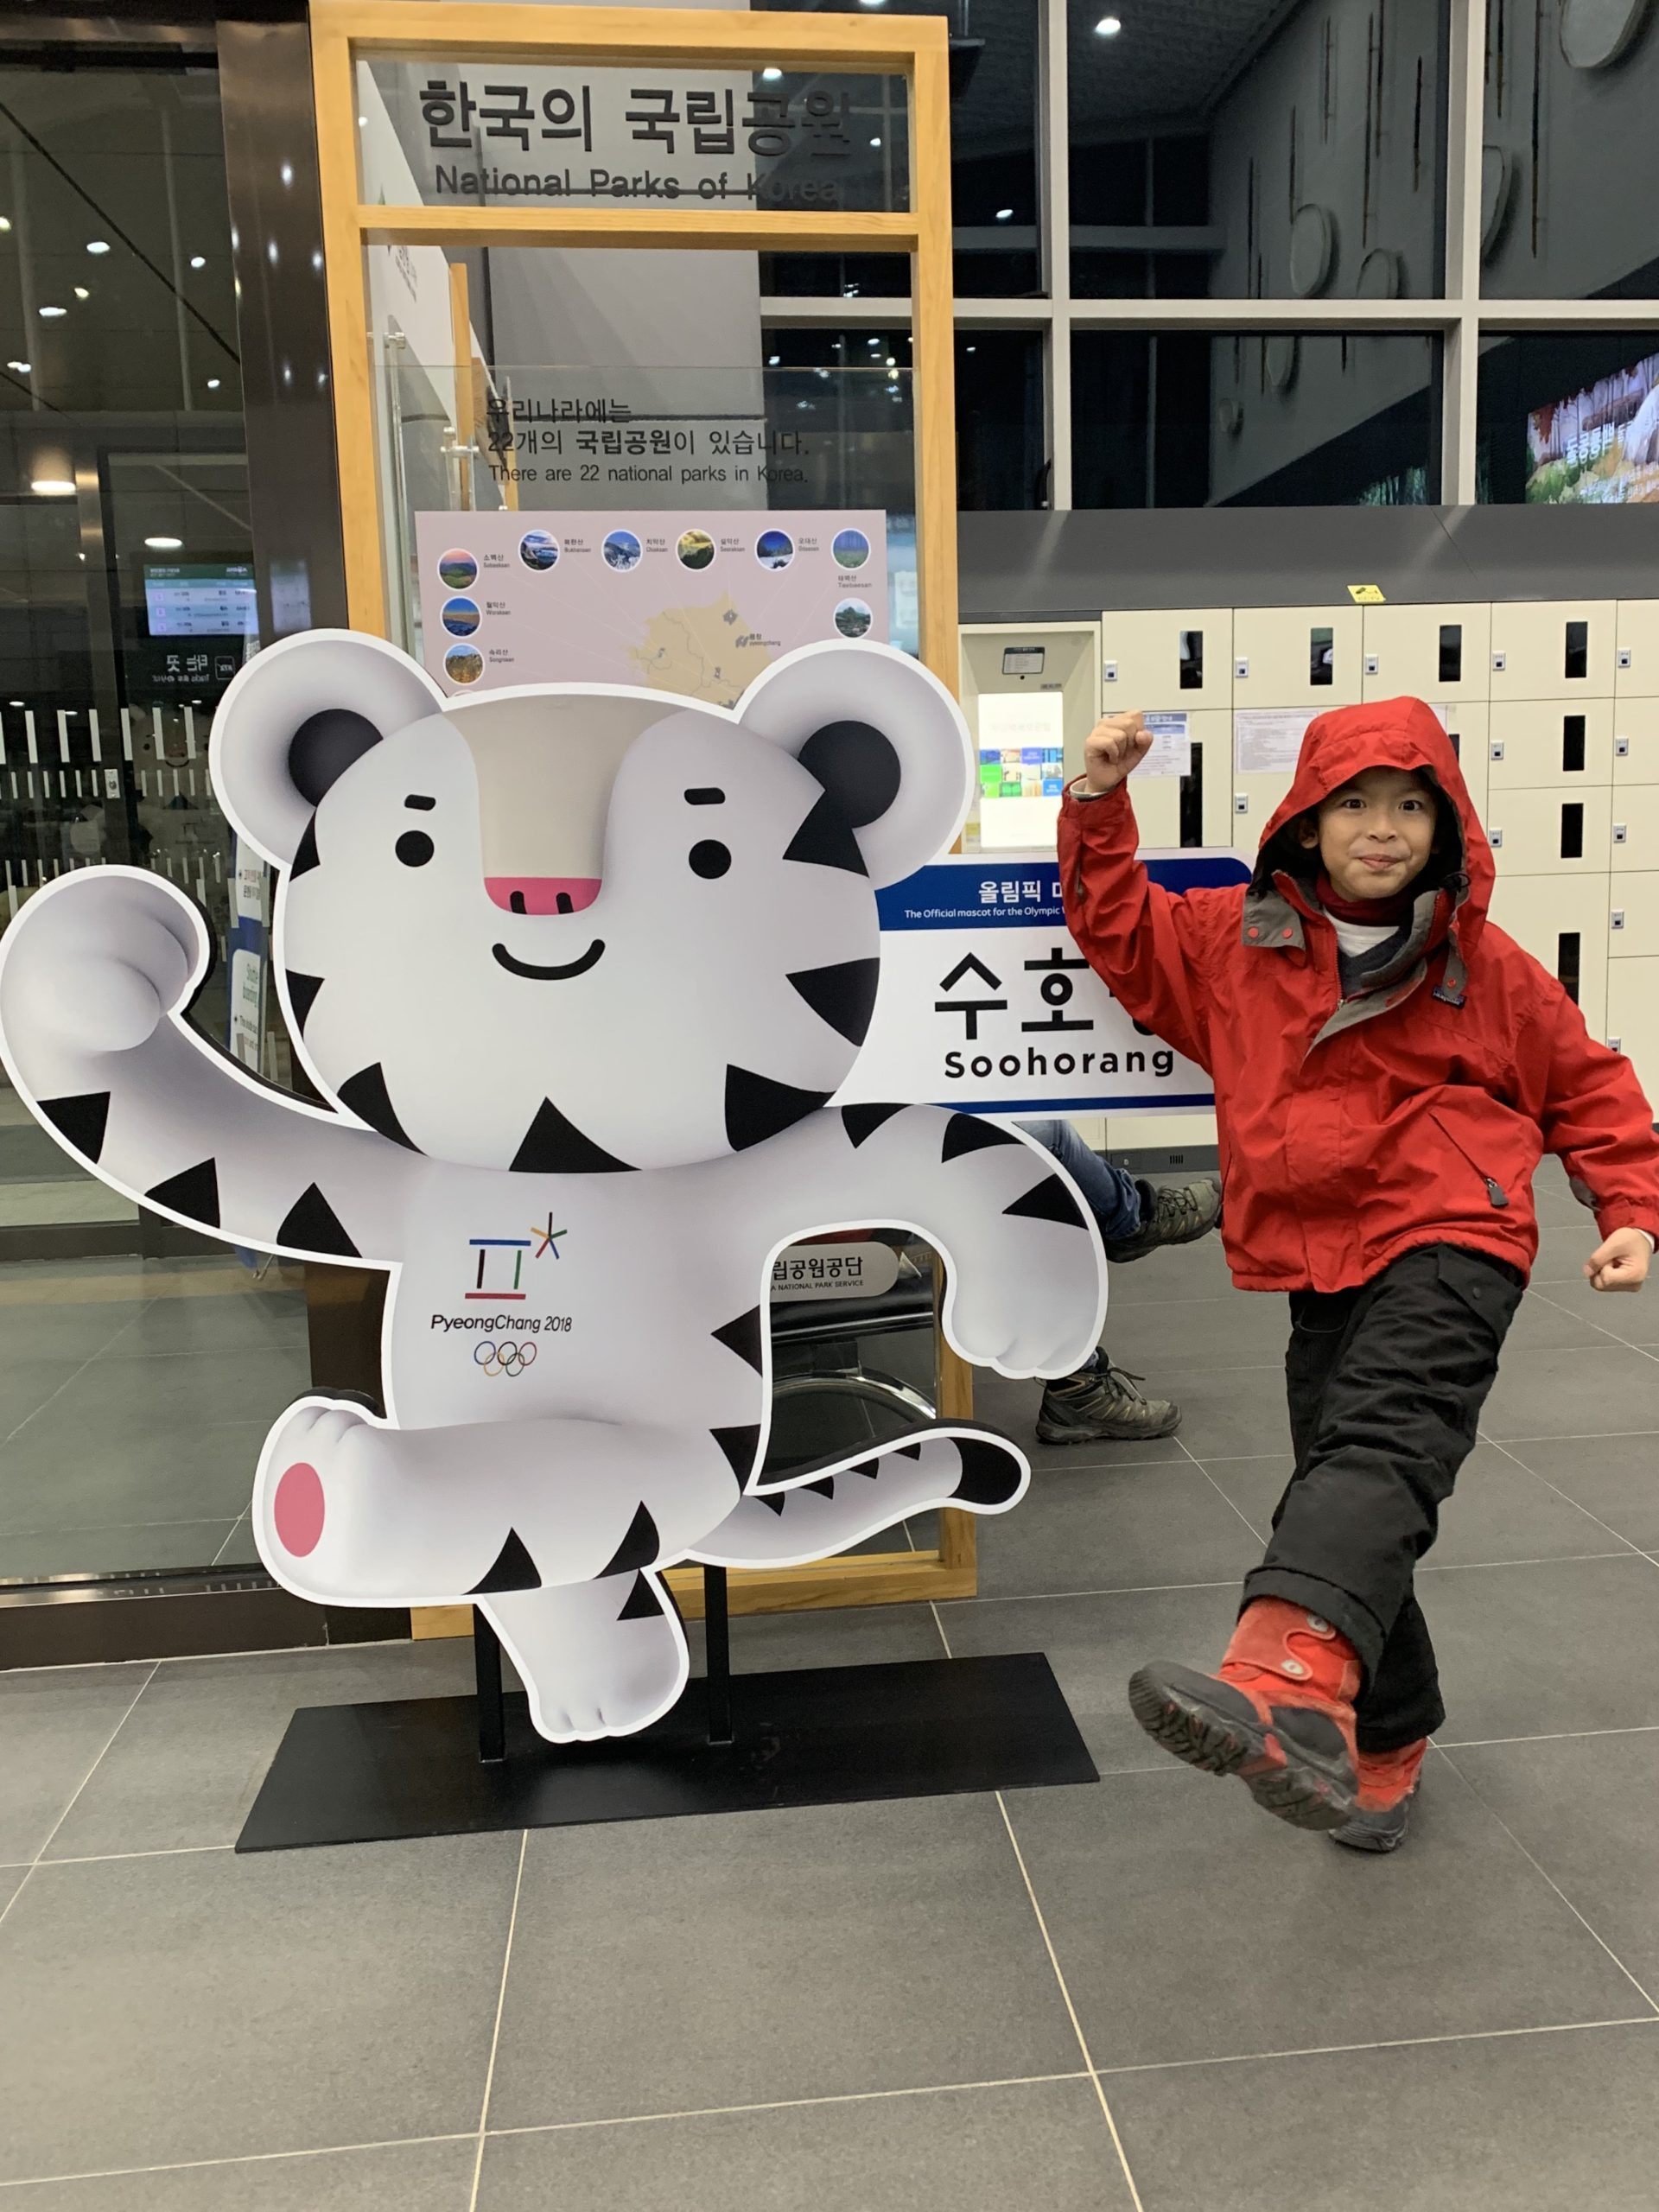 With the tiger mascot of the PyeongChang Olympics